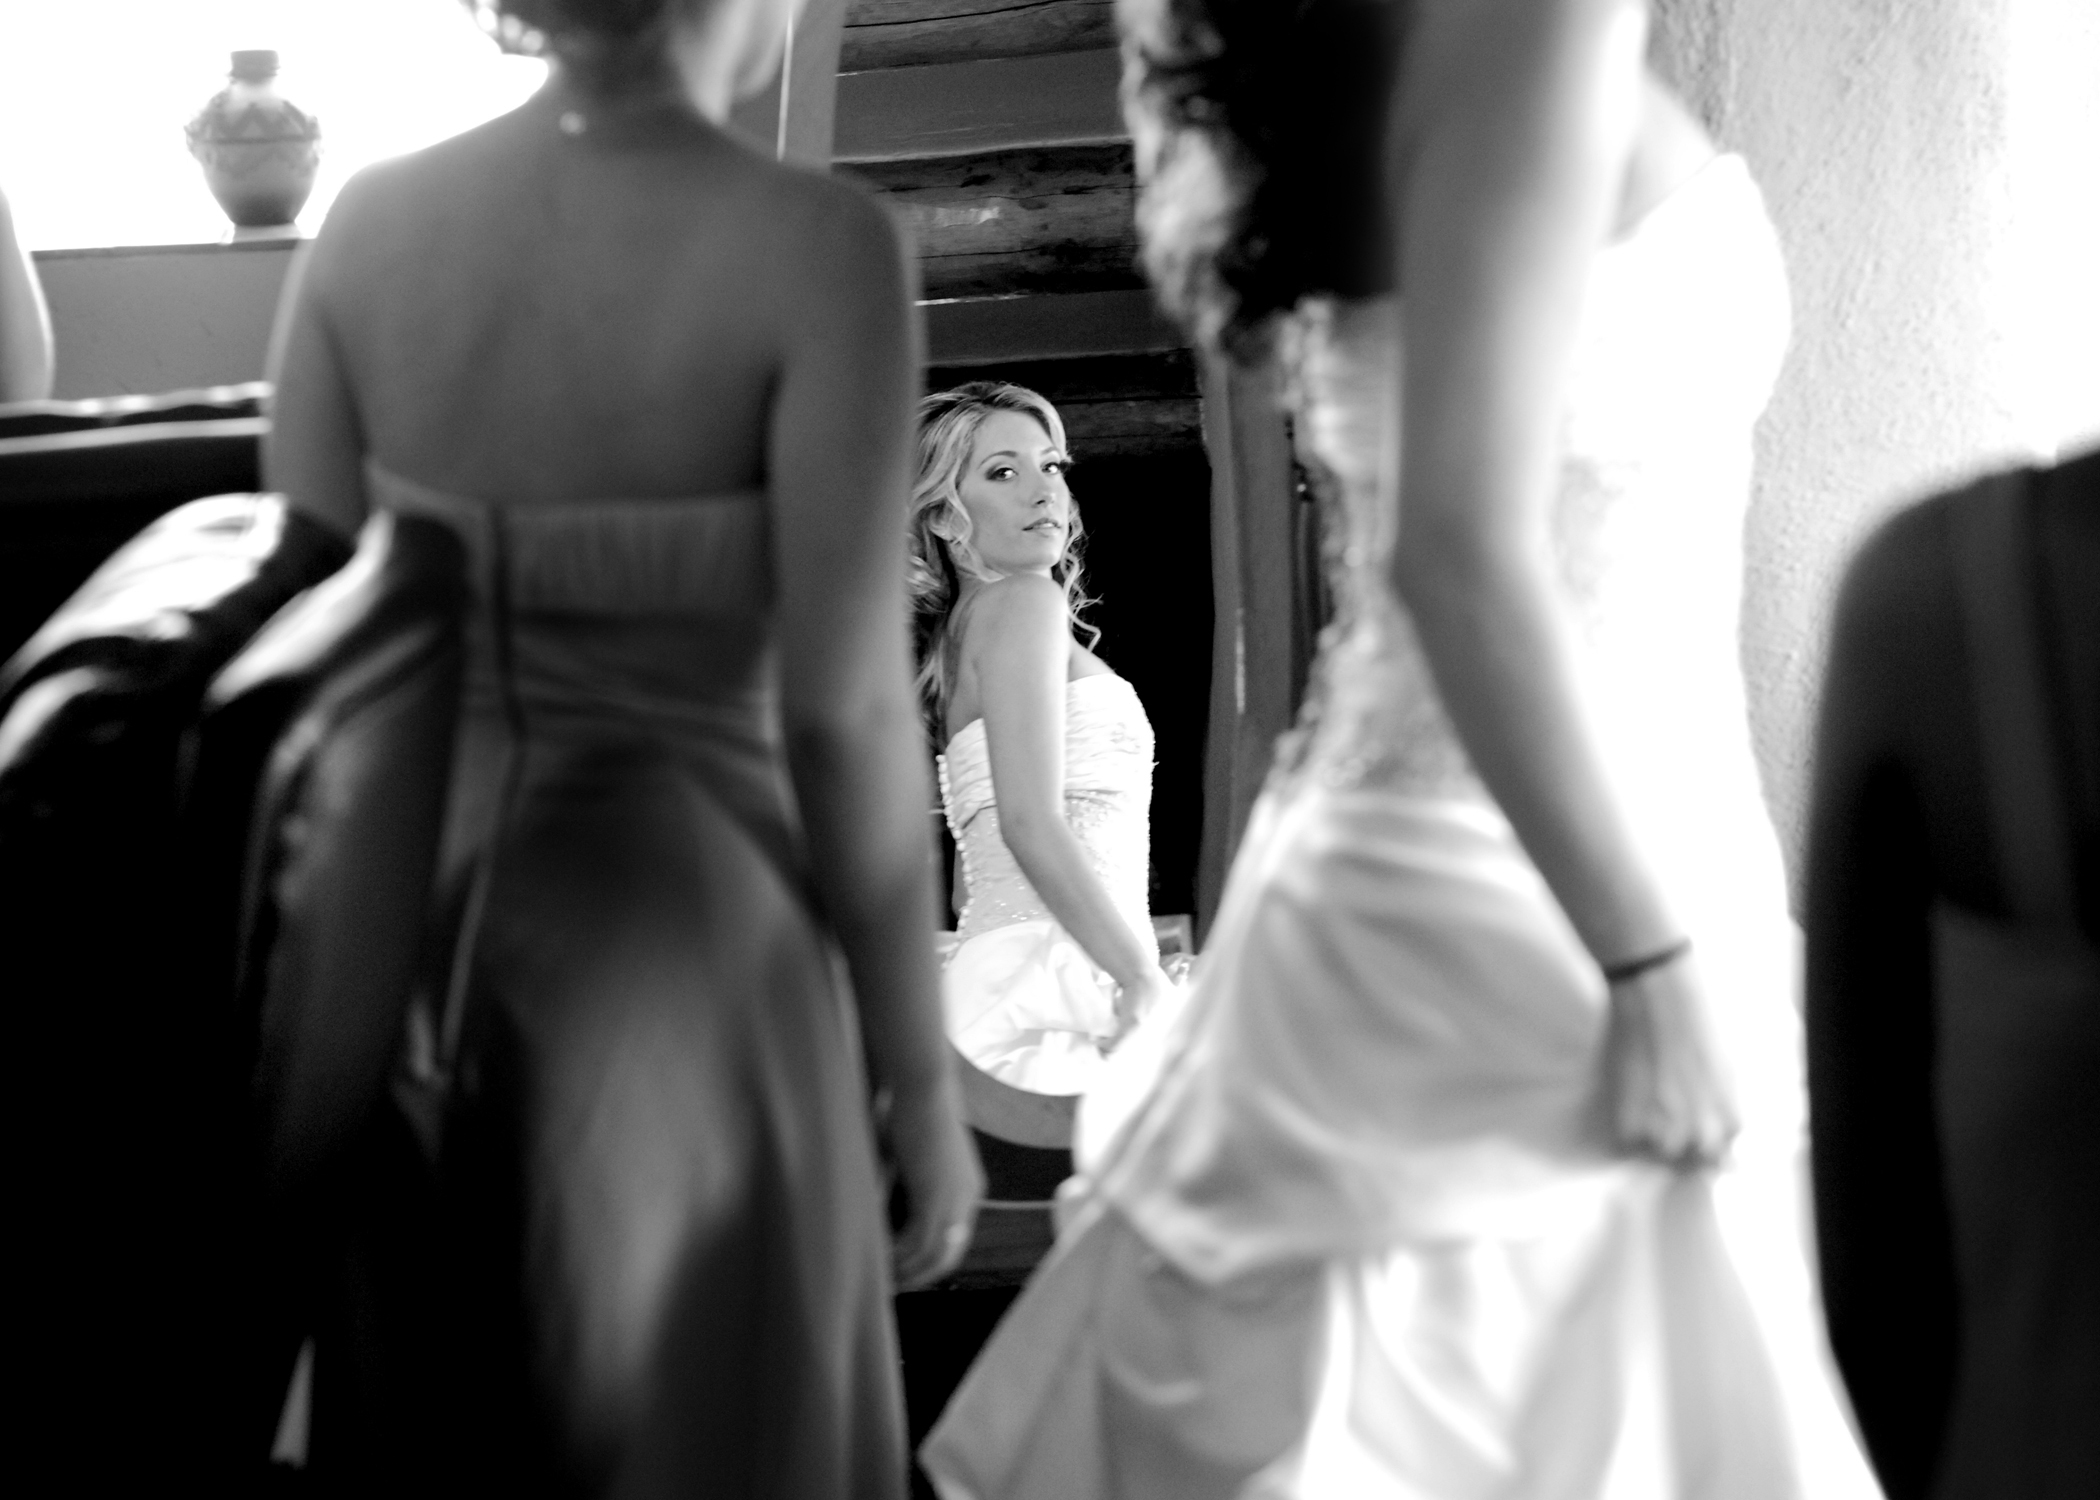 Photography, white, black, Bride, And, In, Mirror, Photograph, Reflection, Kim donald photography